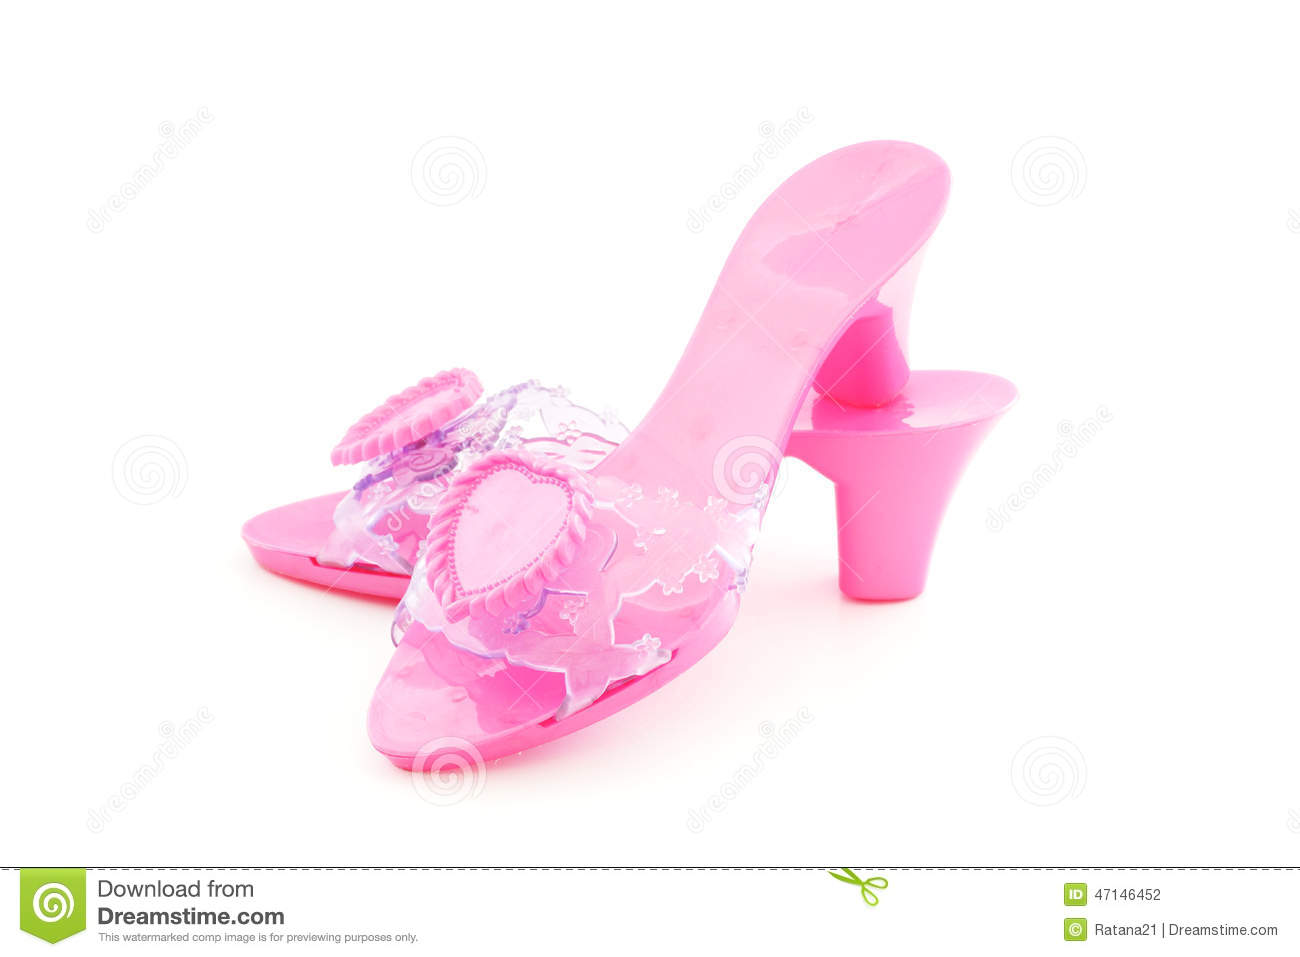 chaussures roses en plastique de talon haut pour la fille photo stock image du blanc femelle. Black Bedroom Furniture Sets. Home Design Ideas